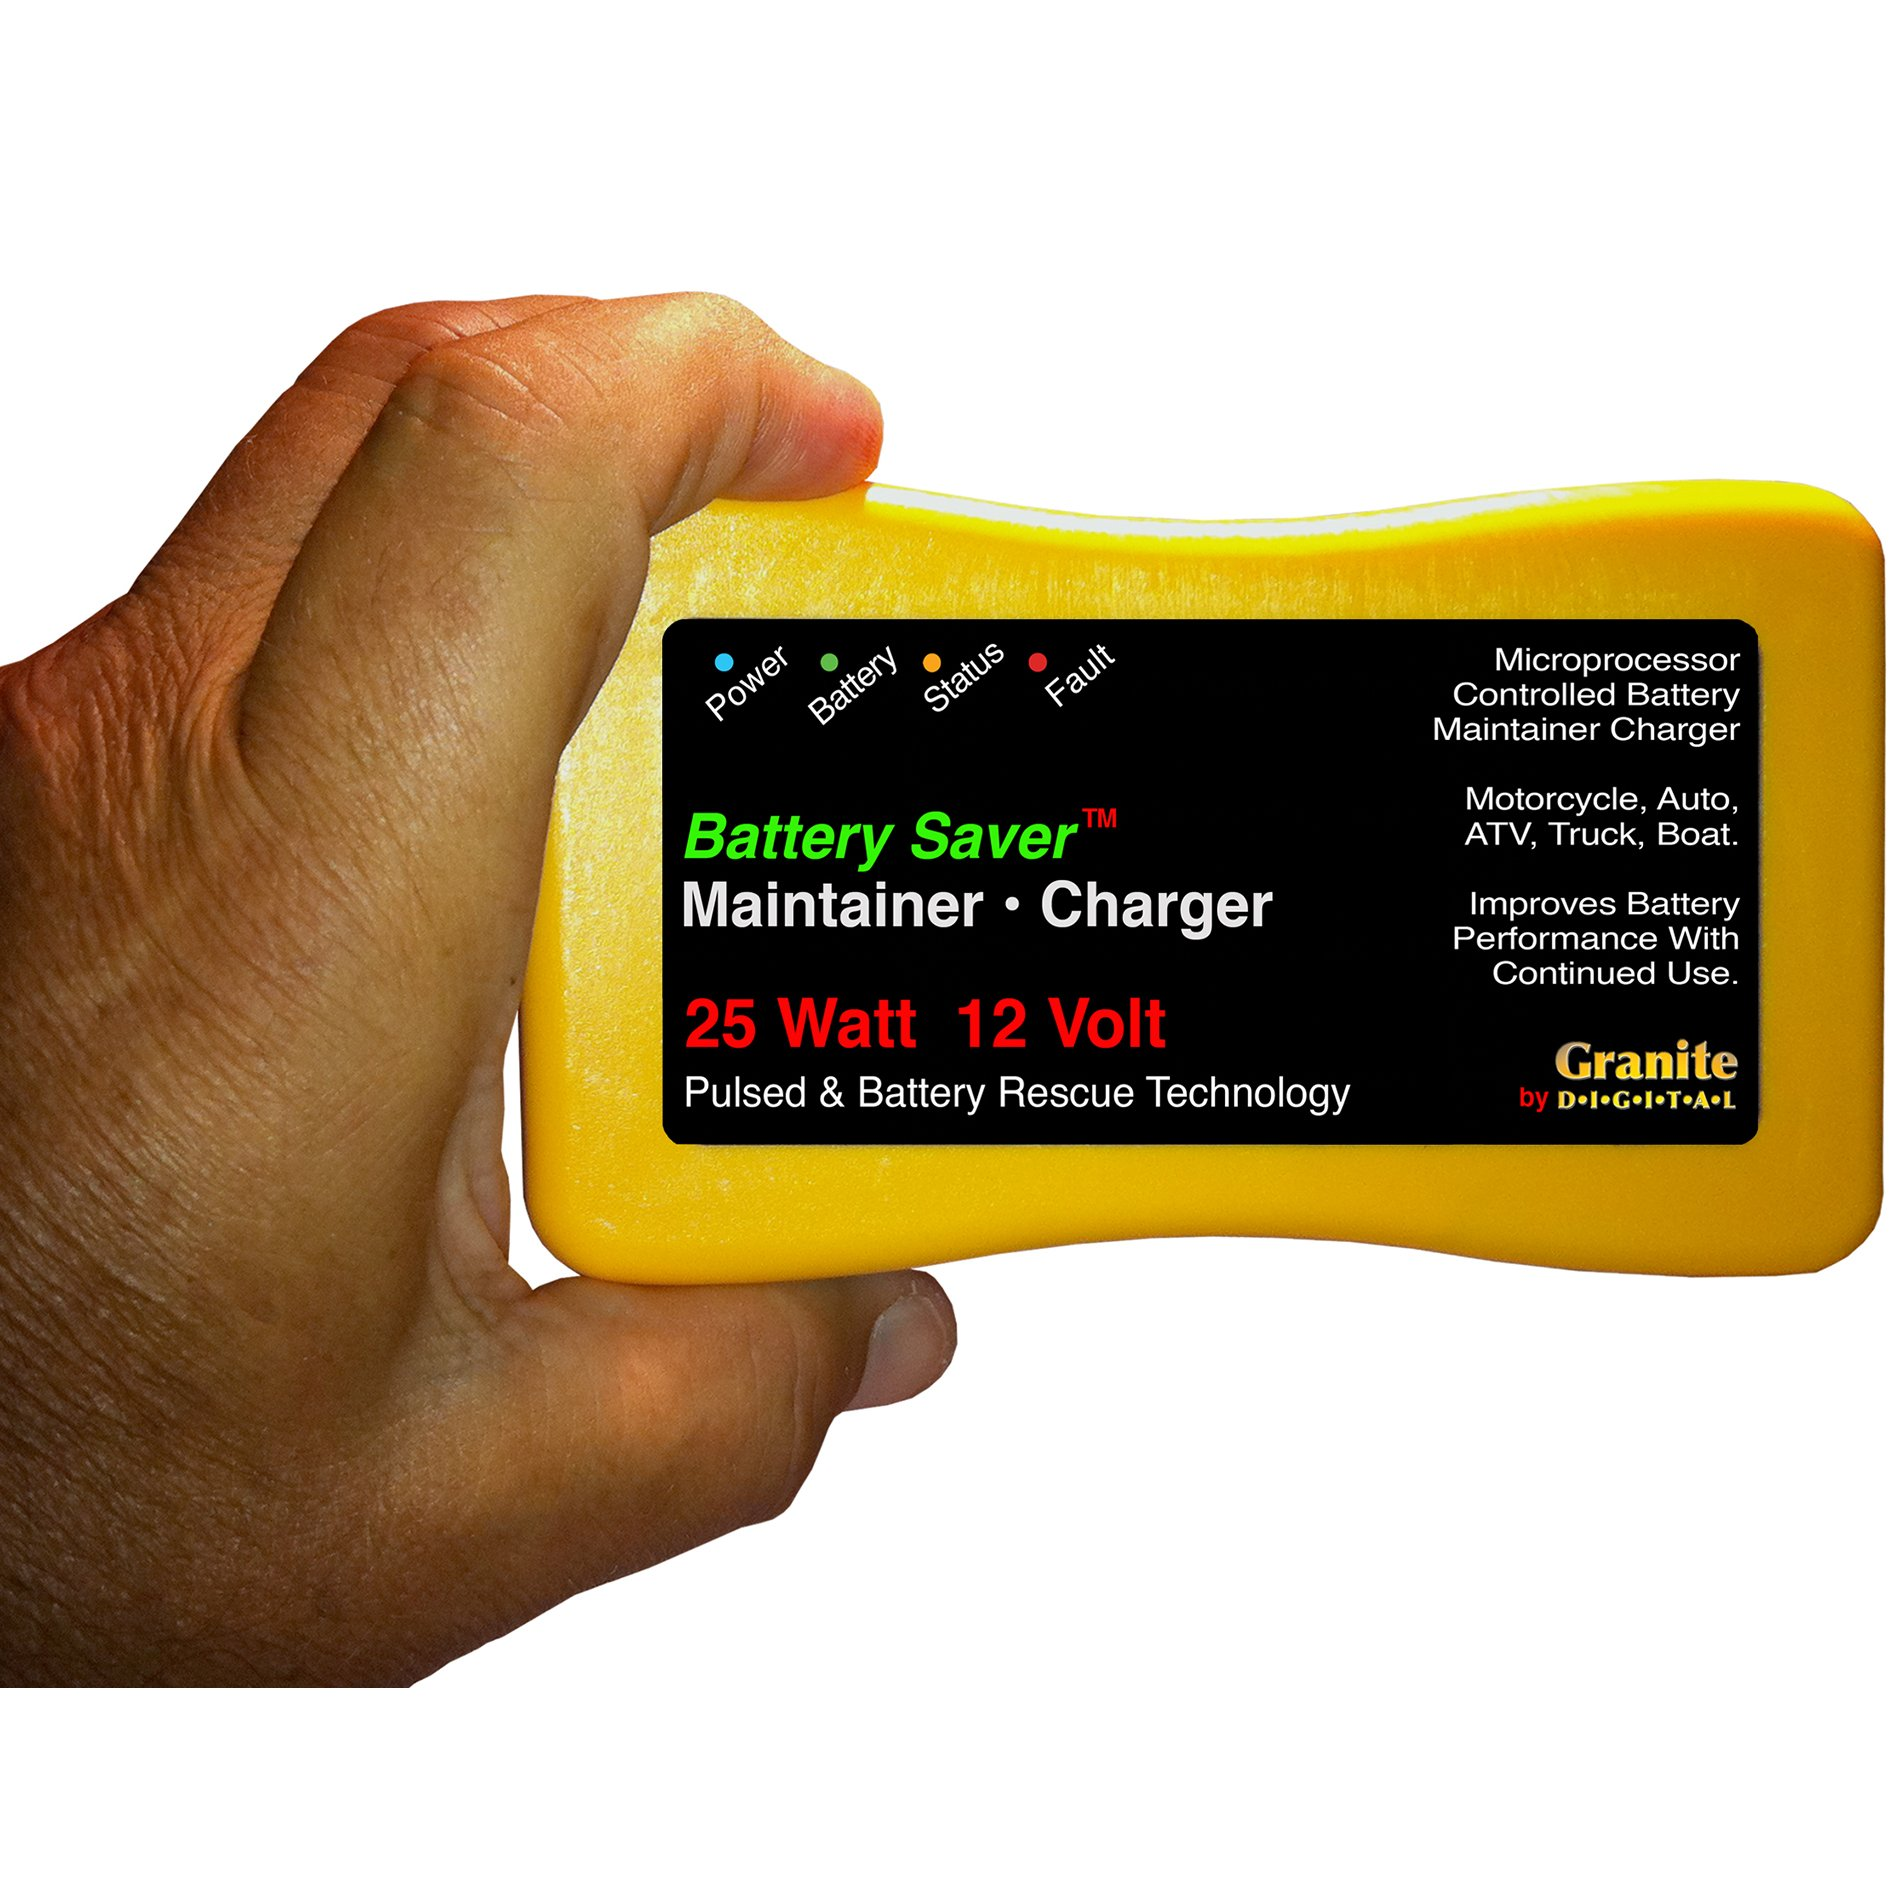 Save A Battery 3015 12 Volt/25 Watt Battery Saver/Maintainer and Battery Rescue by Battery Saver (Image #8)